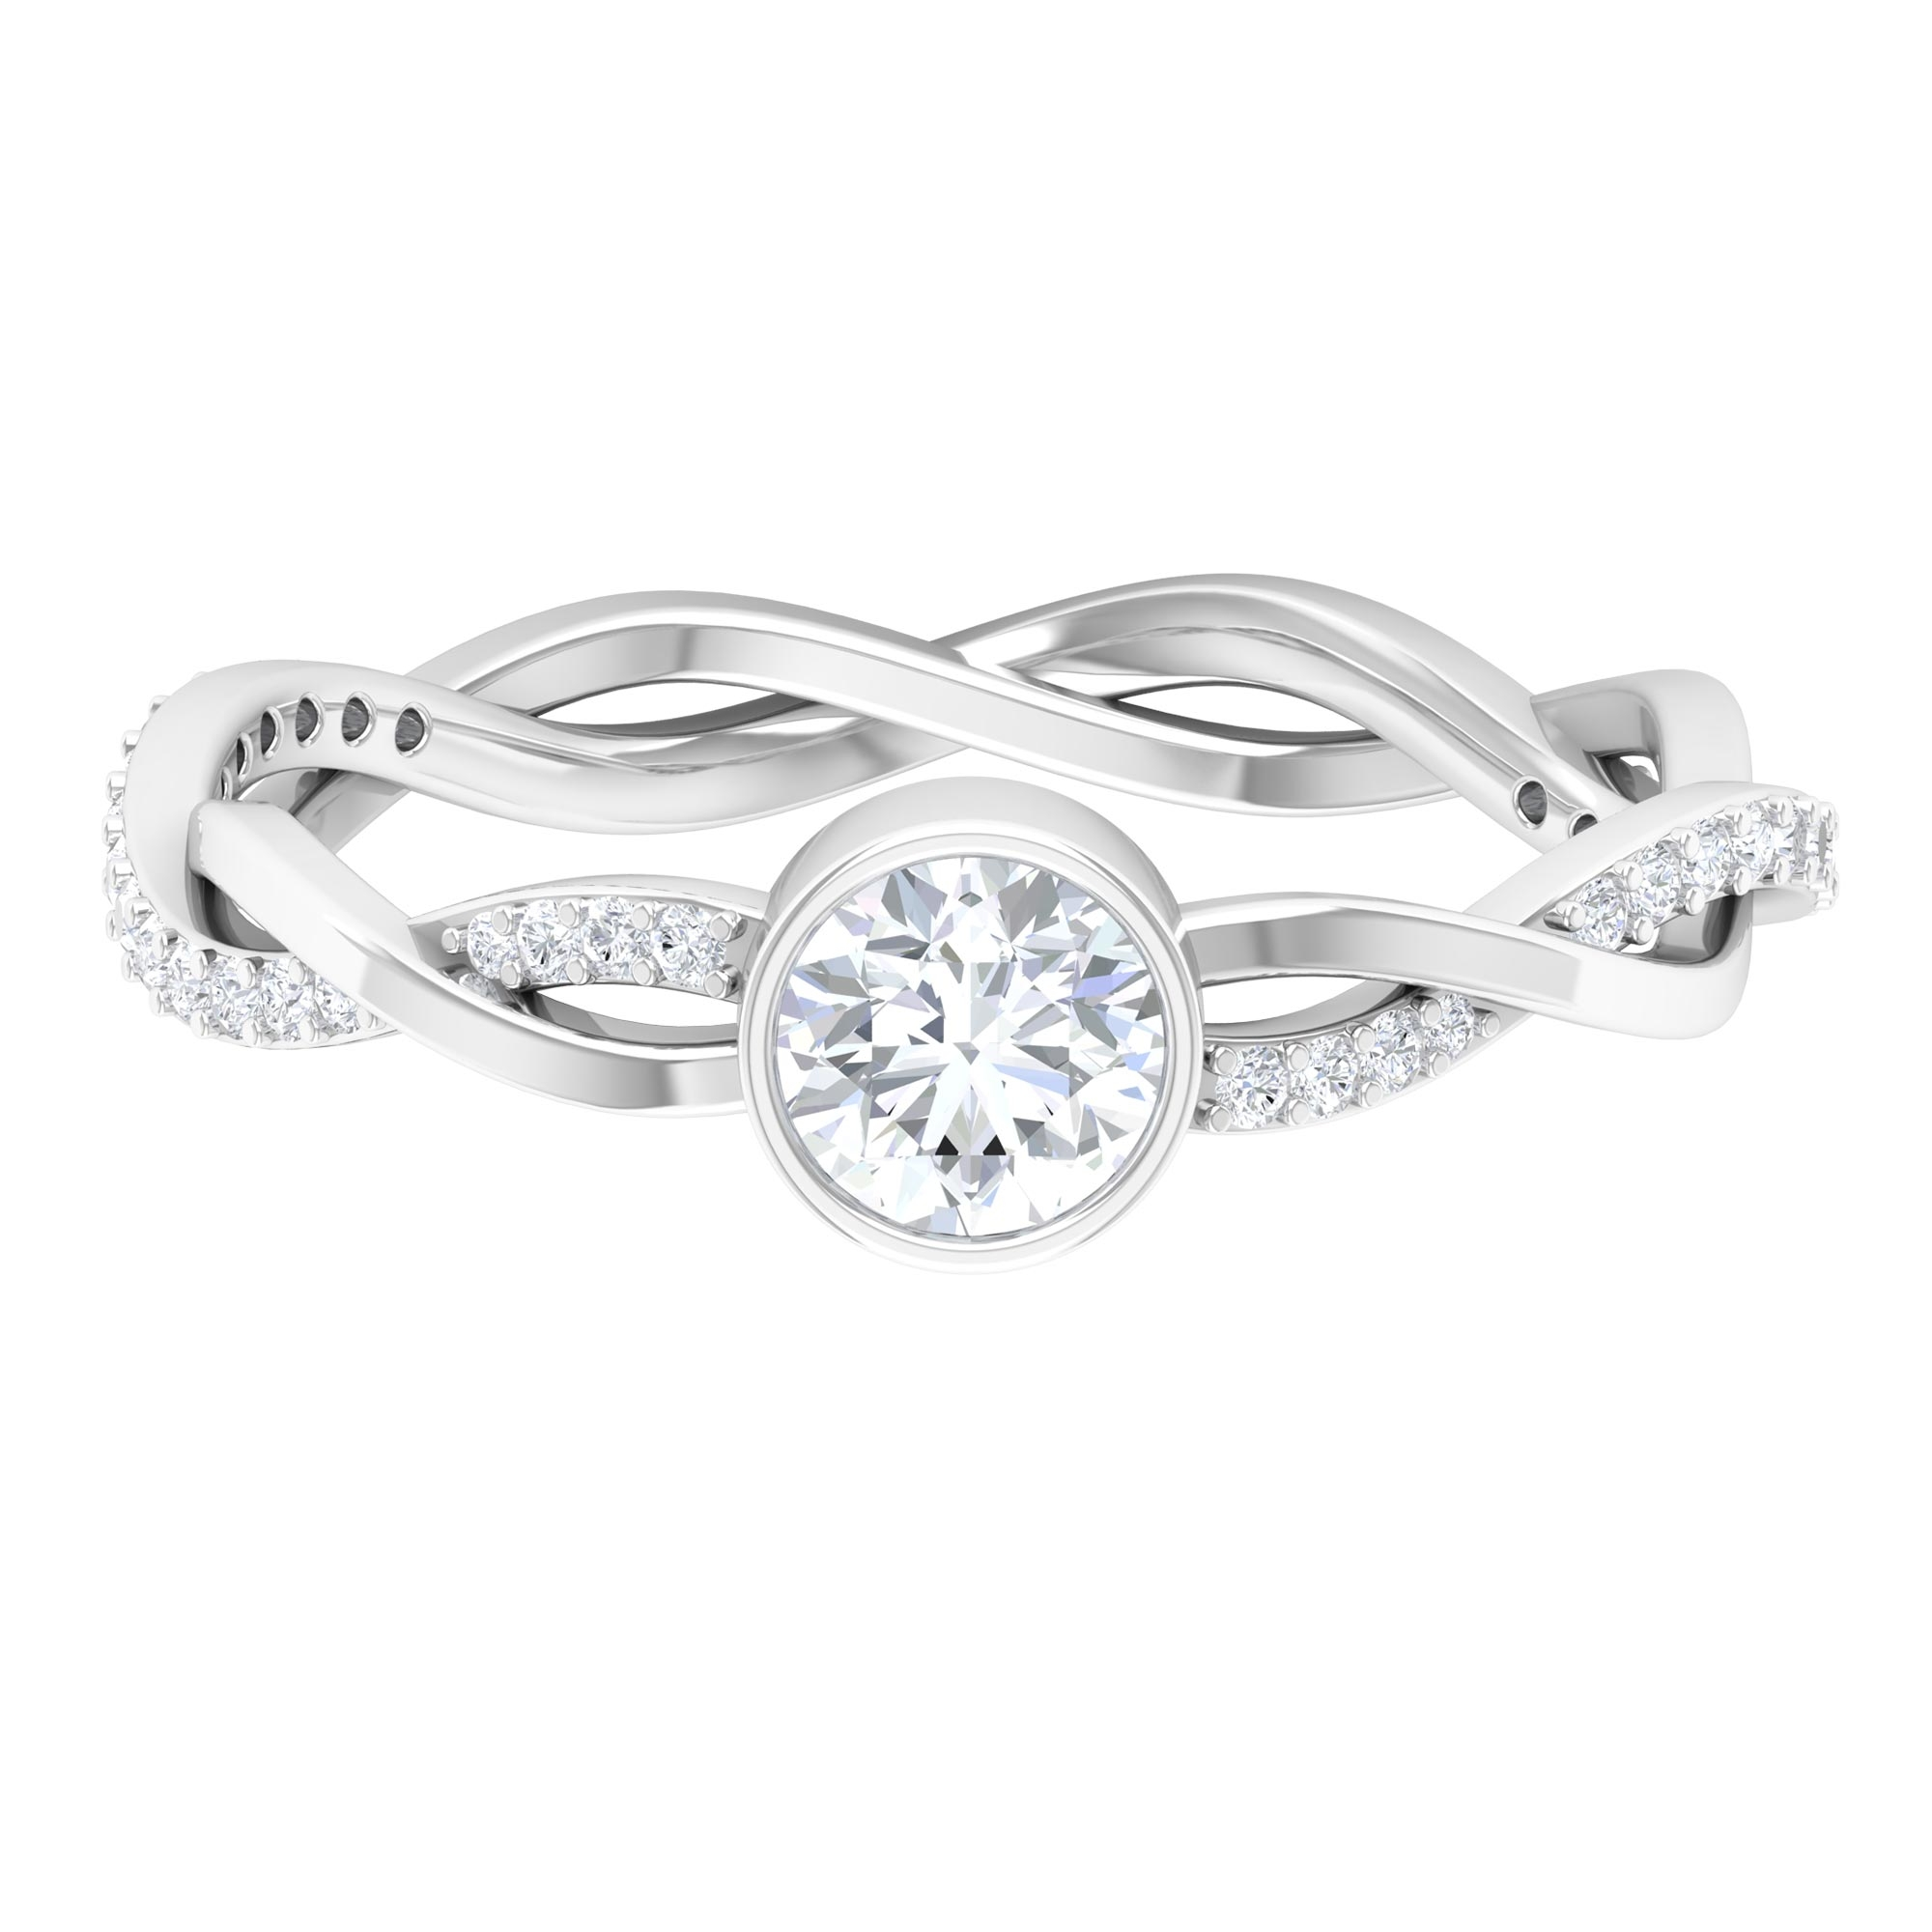 5 MM Round Cut Diamond Solitaire Braided Ring in Bezel Setting